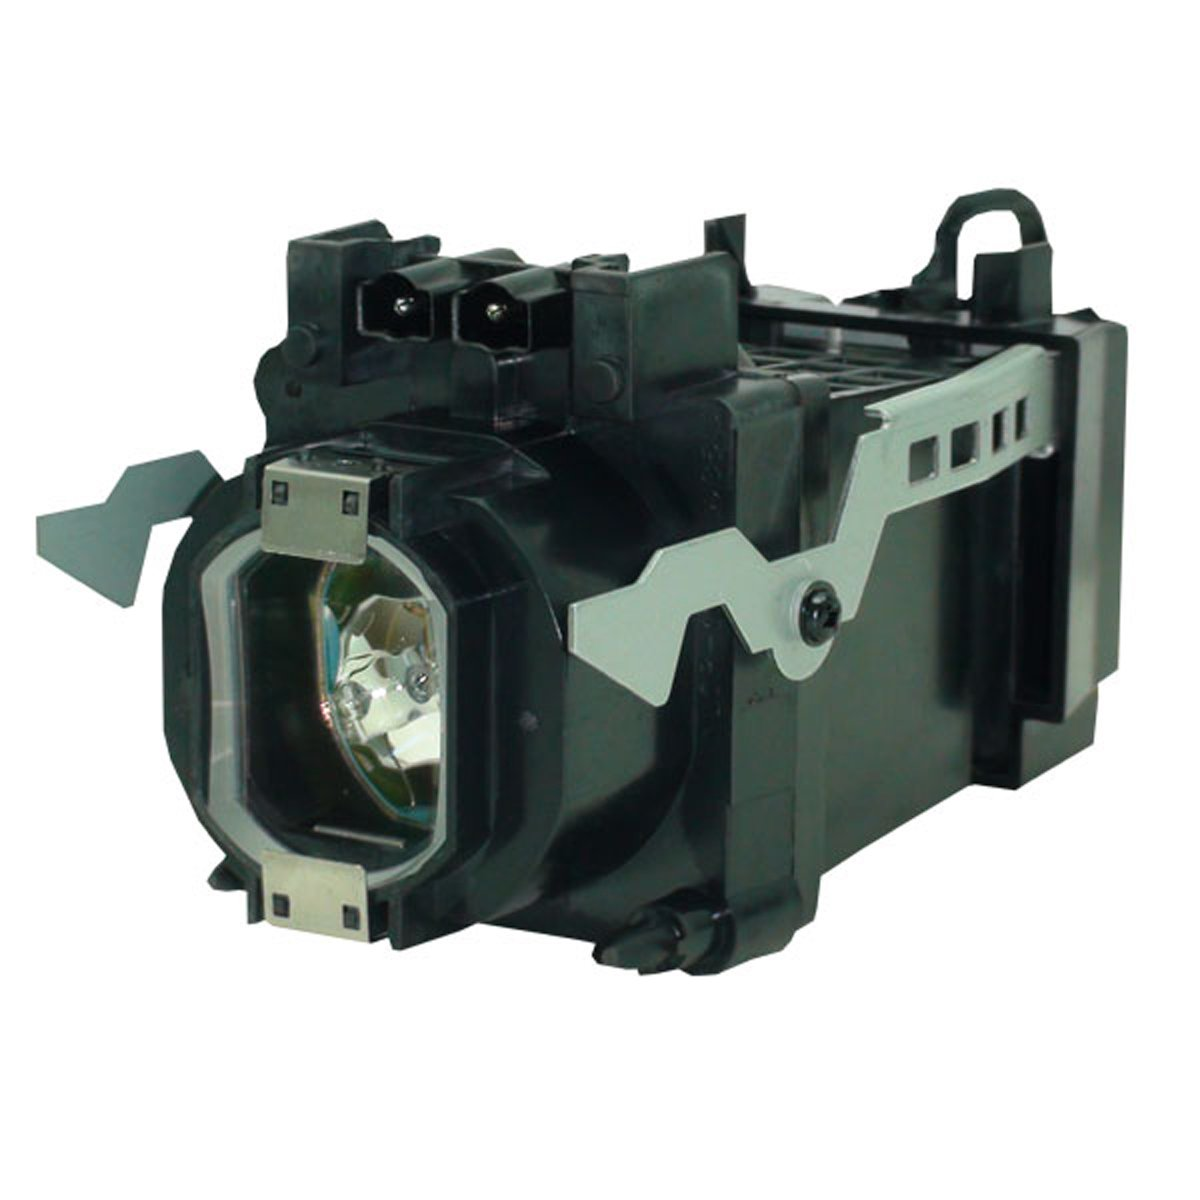 AuraBeam Economy Replacement Lamp for Rear Projection TV, Compatible for Sony XL-2400 (KDF-E50A10, KDF-E42A10, KDF-50E2000, KDF-E50A11E, KDF-55E2000, KDF-46E2000, KDF-E50A12U, KDF-50E2010, KDF-42E2000 by Aurabeam